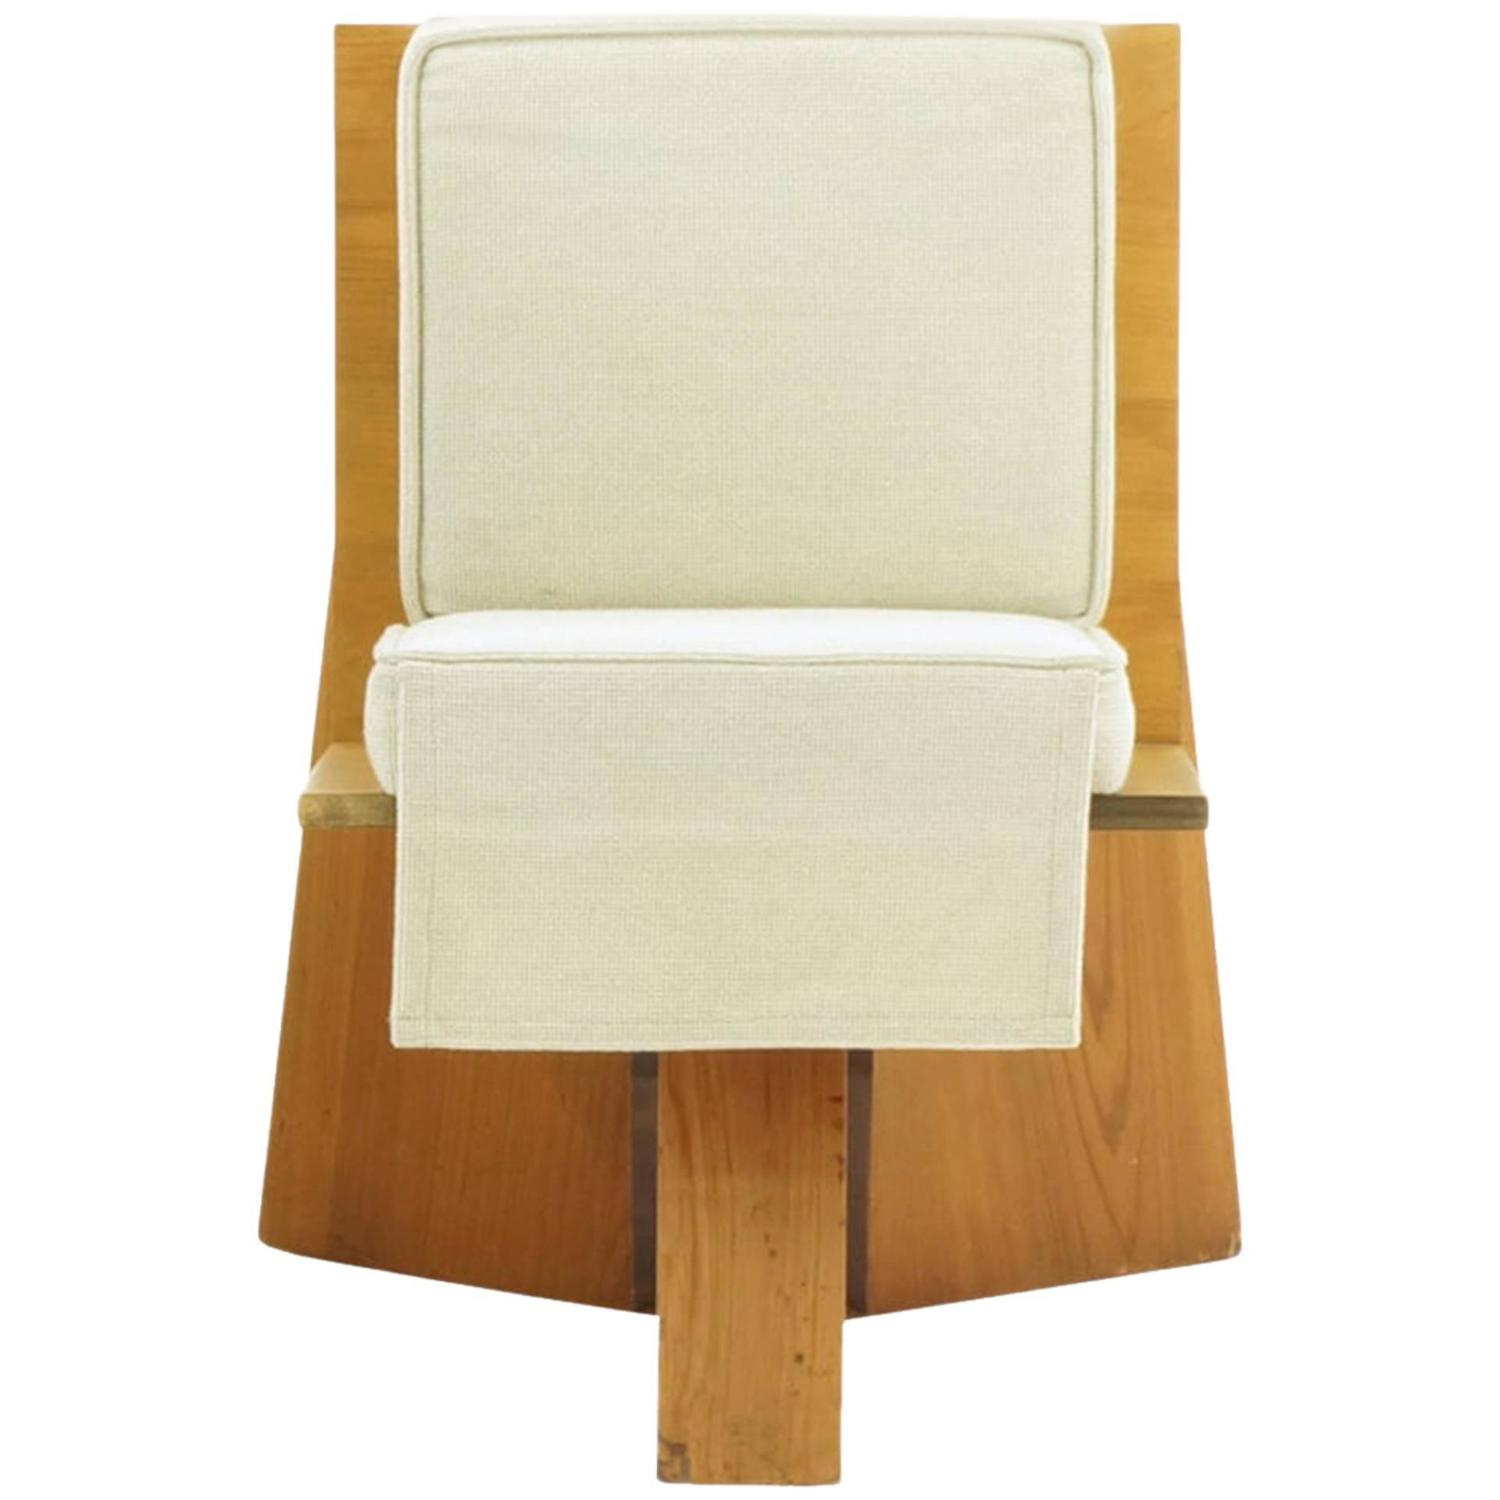 Surprising Frank Lloyd Wright Chair From The Sondern House Kansas City Theyellowbook Wood Chair Design Ideas Theyellowbookinfo